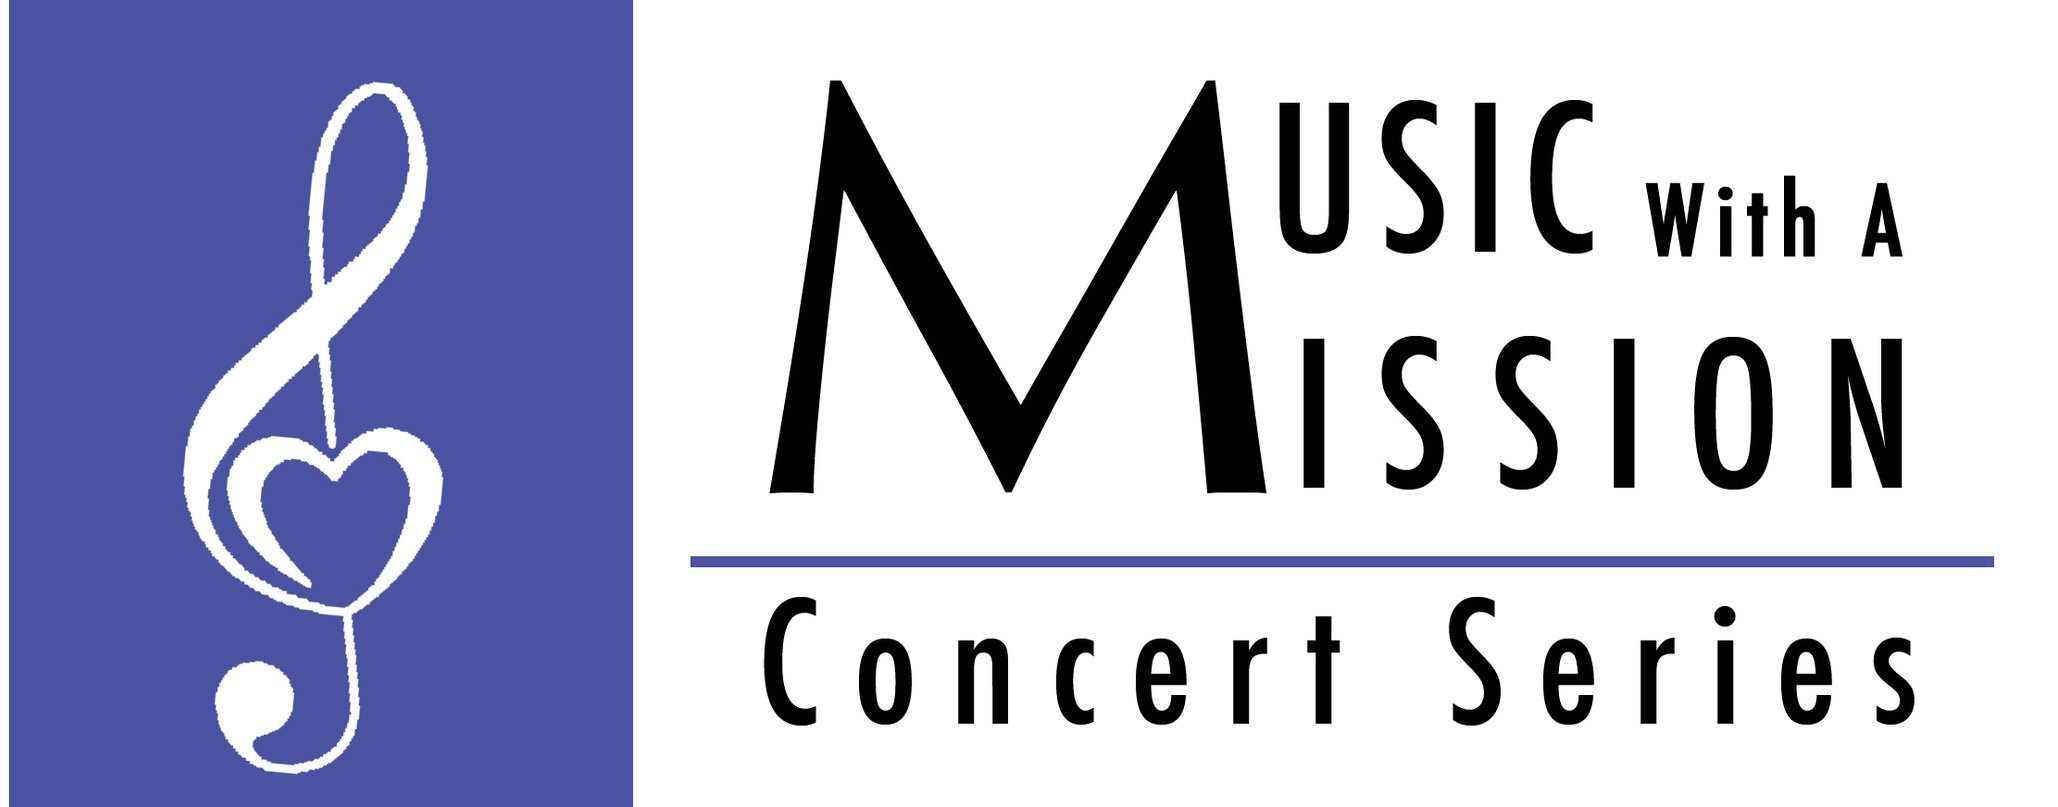 music-with-a-mission-logo Larger (2).jpg